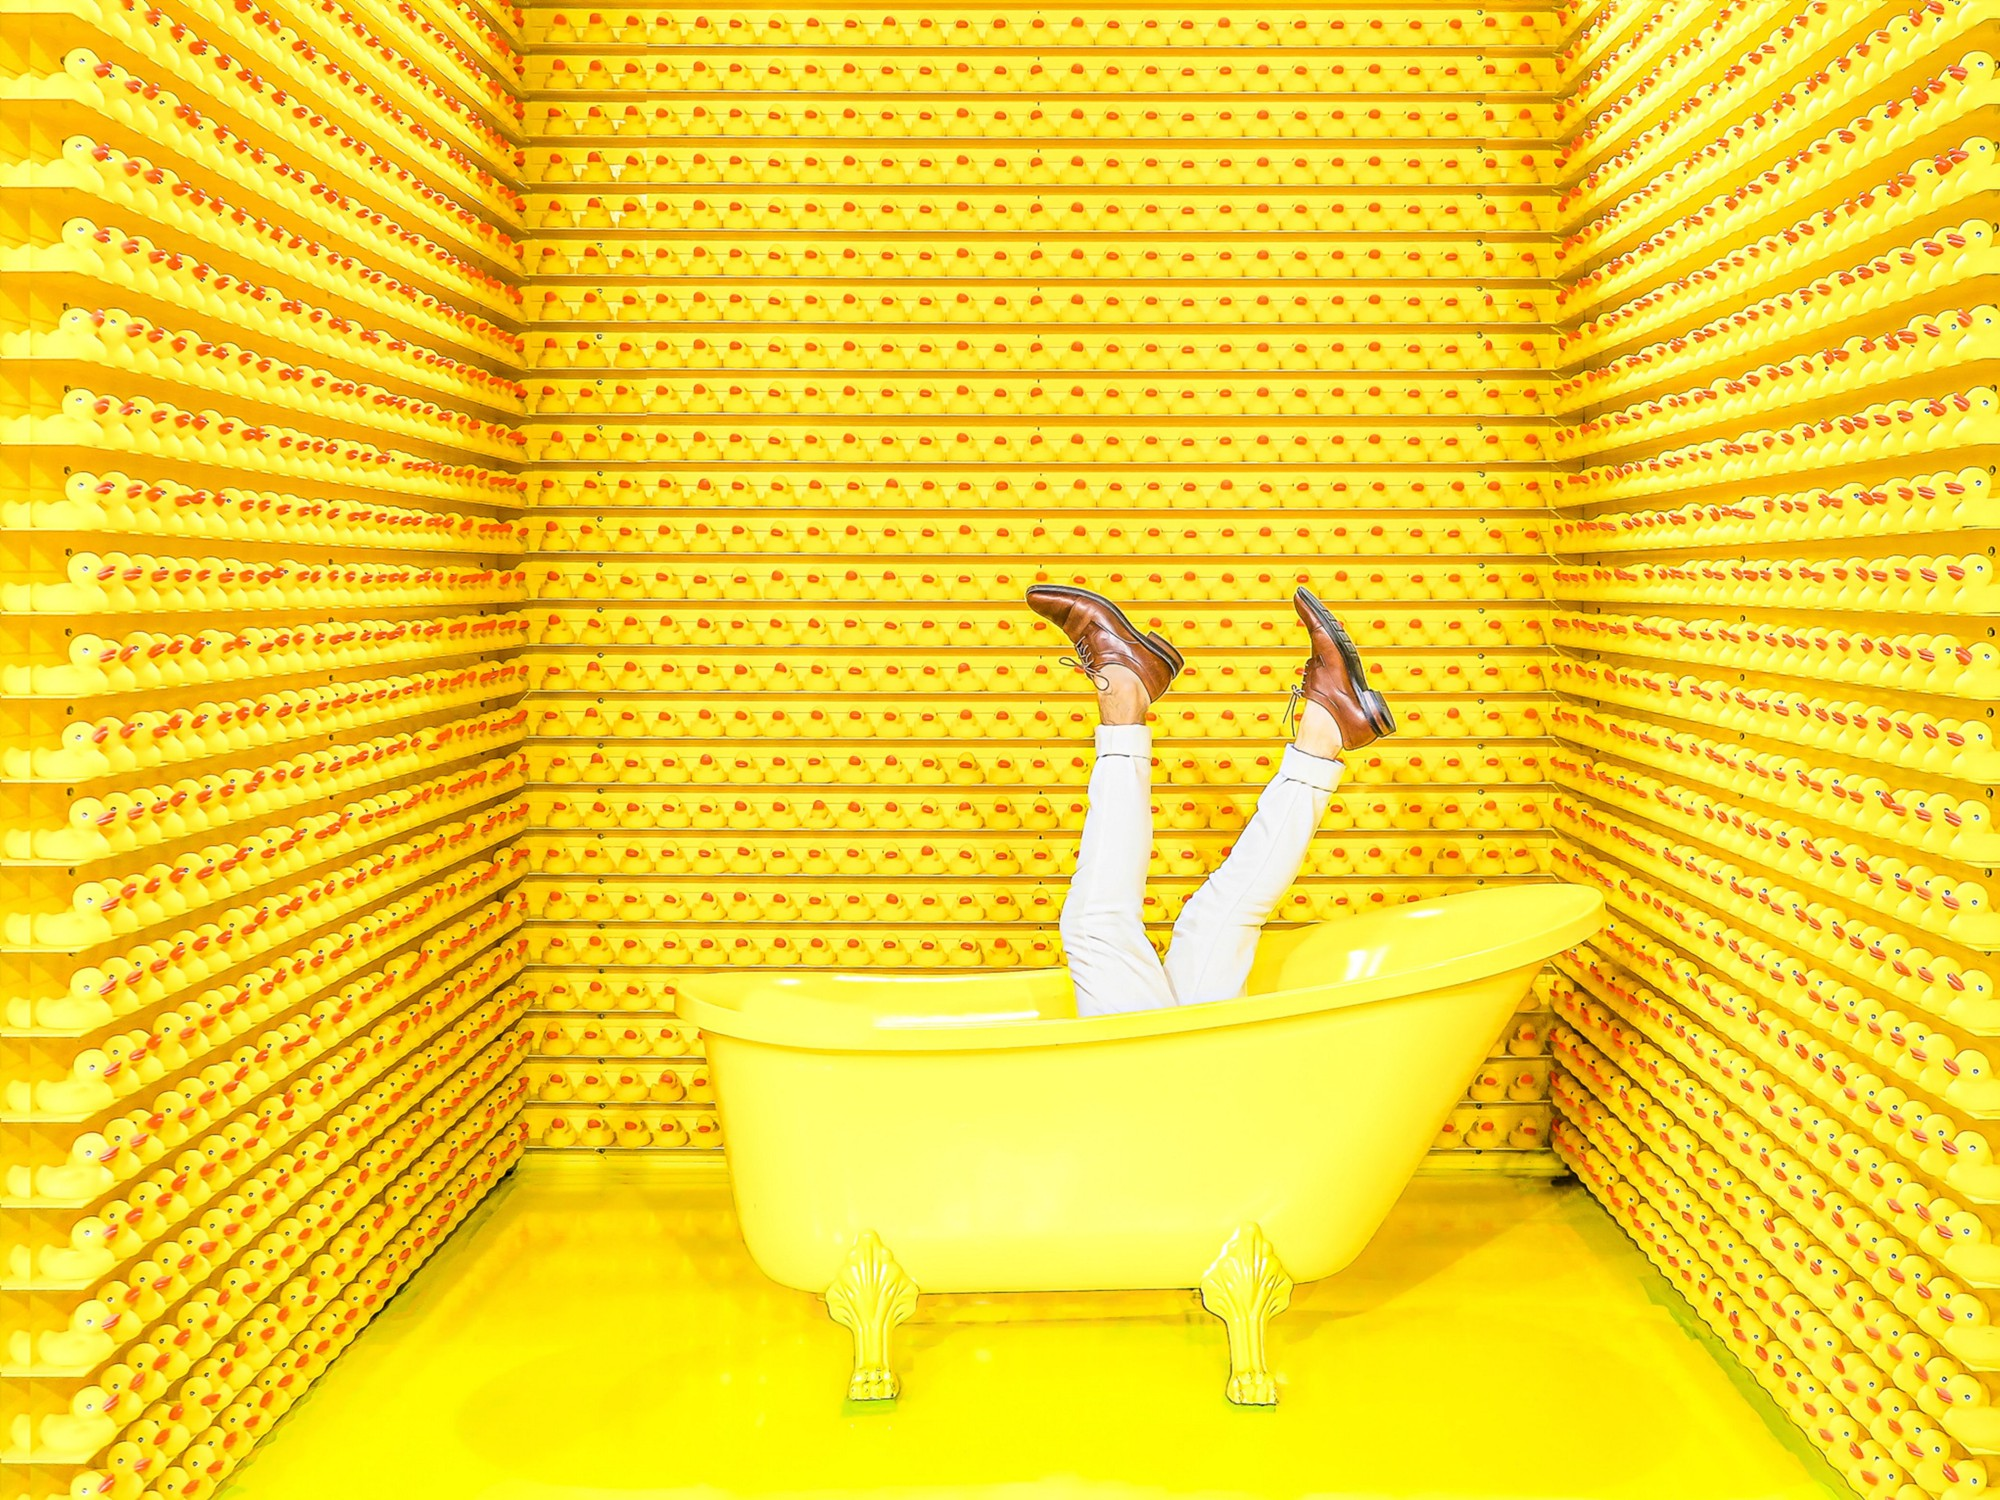 Man comically drowning in yellow bathtub surrounded by walls of rubber duckies.